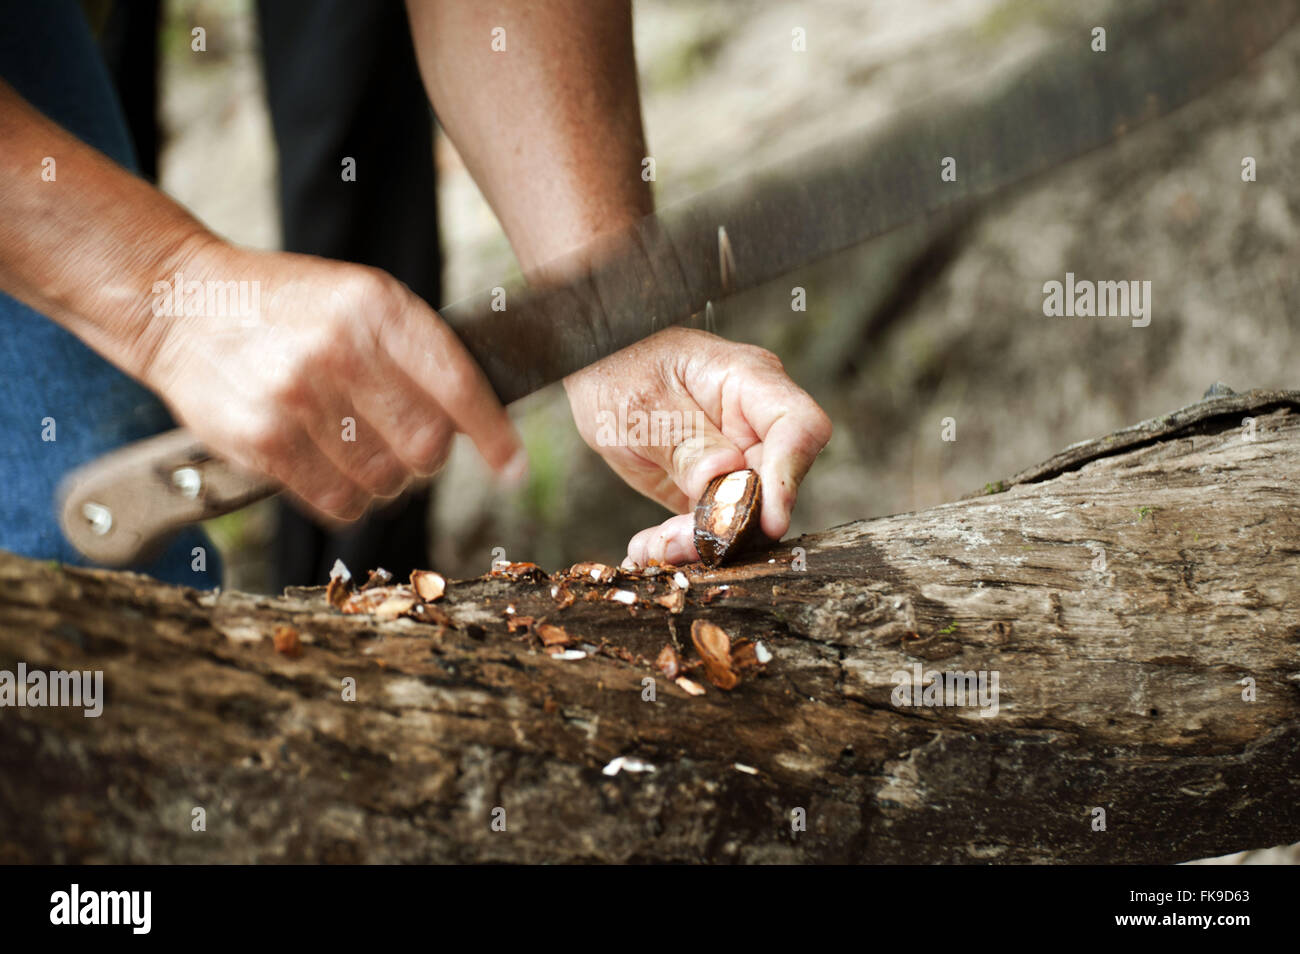 Bushman opening seed-nut to - Stock Image